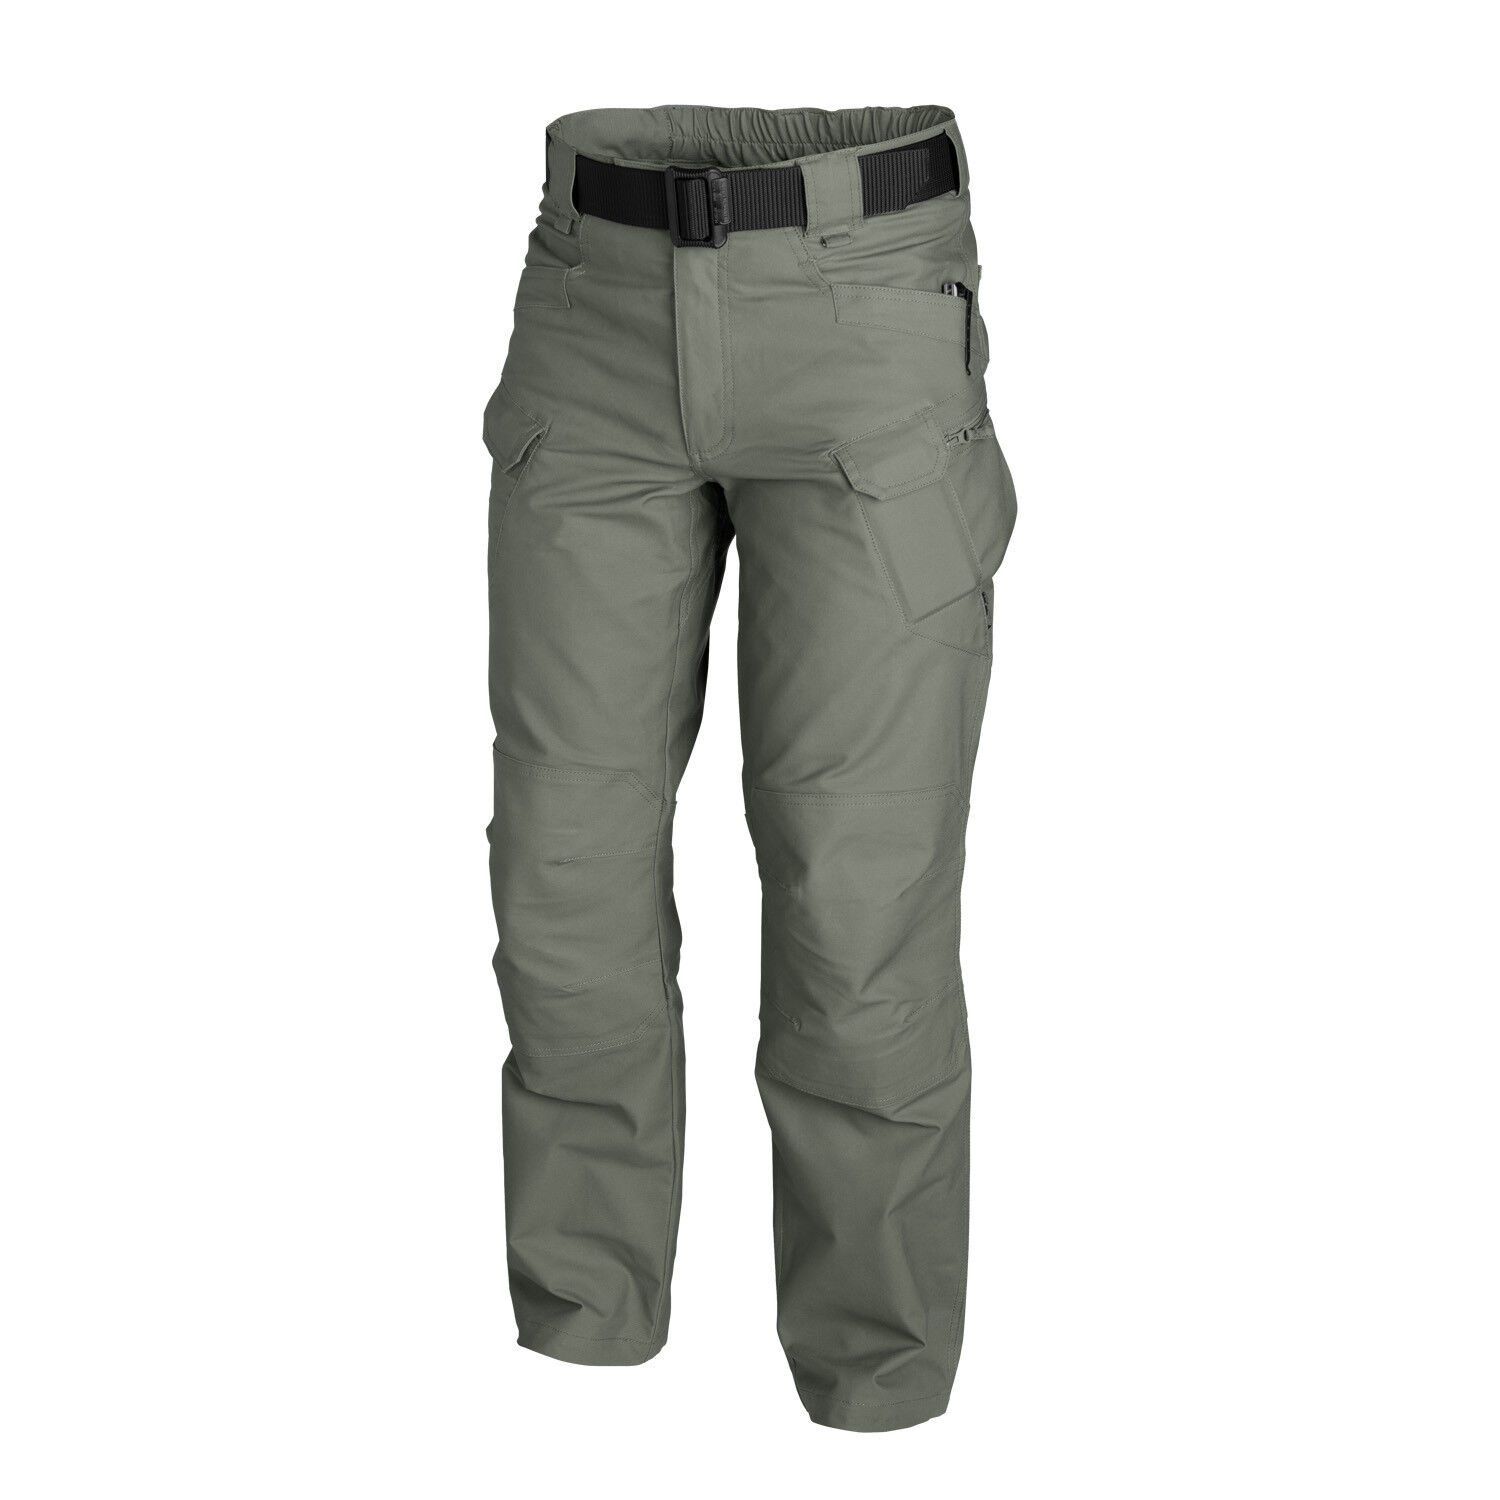 HELIKON TEX UTP URBAN URBAN UTP TACTICAL Outdoor Trousers Hose oliv drab LL Large Long 8dad16